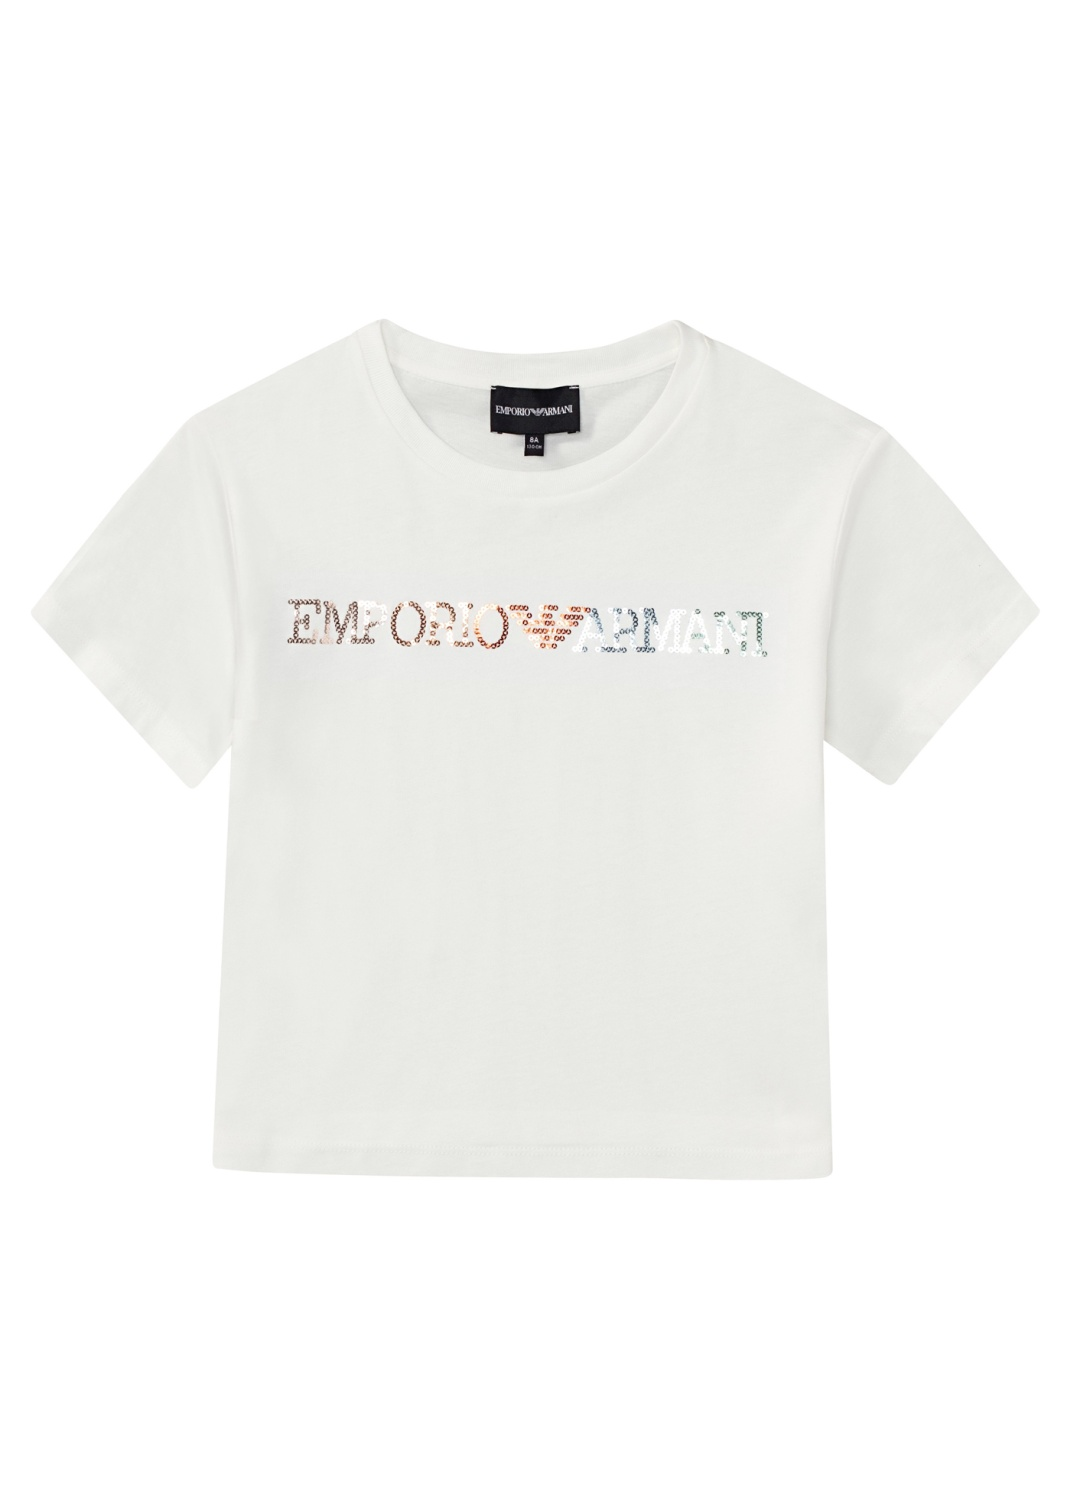 EMPORIO ARMANI Tee image number 0